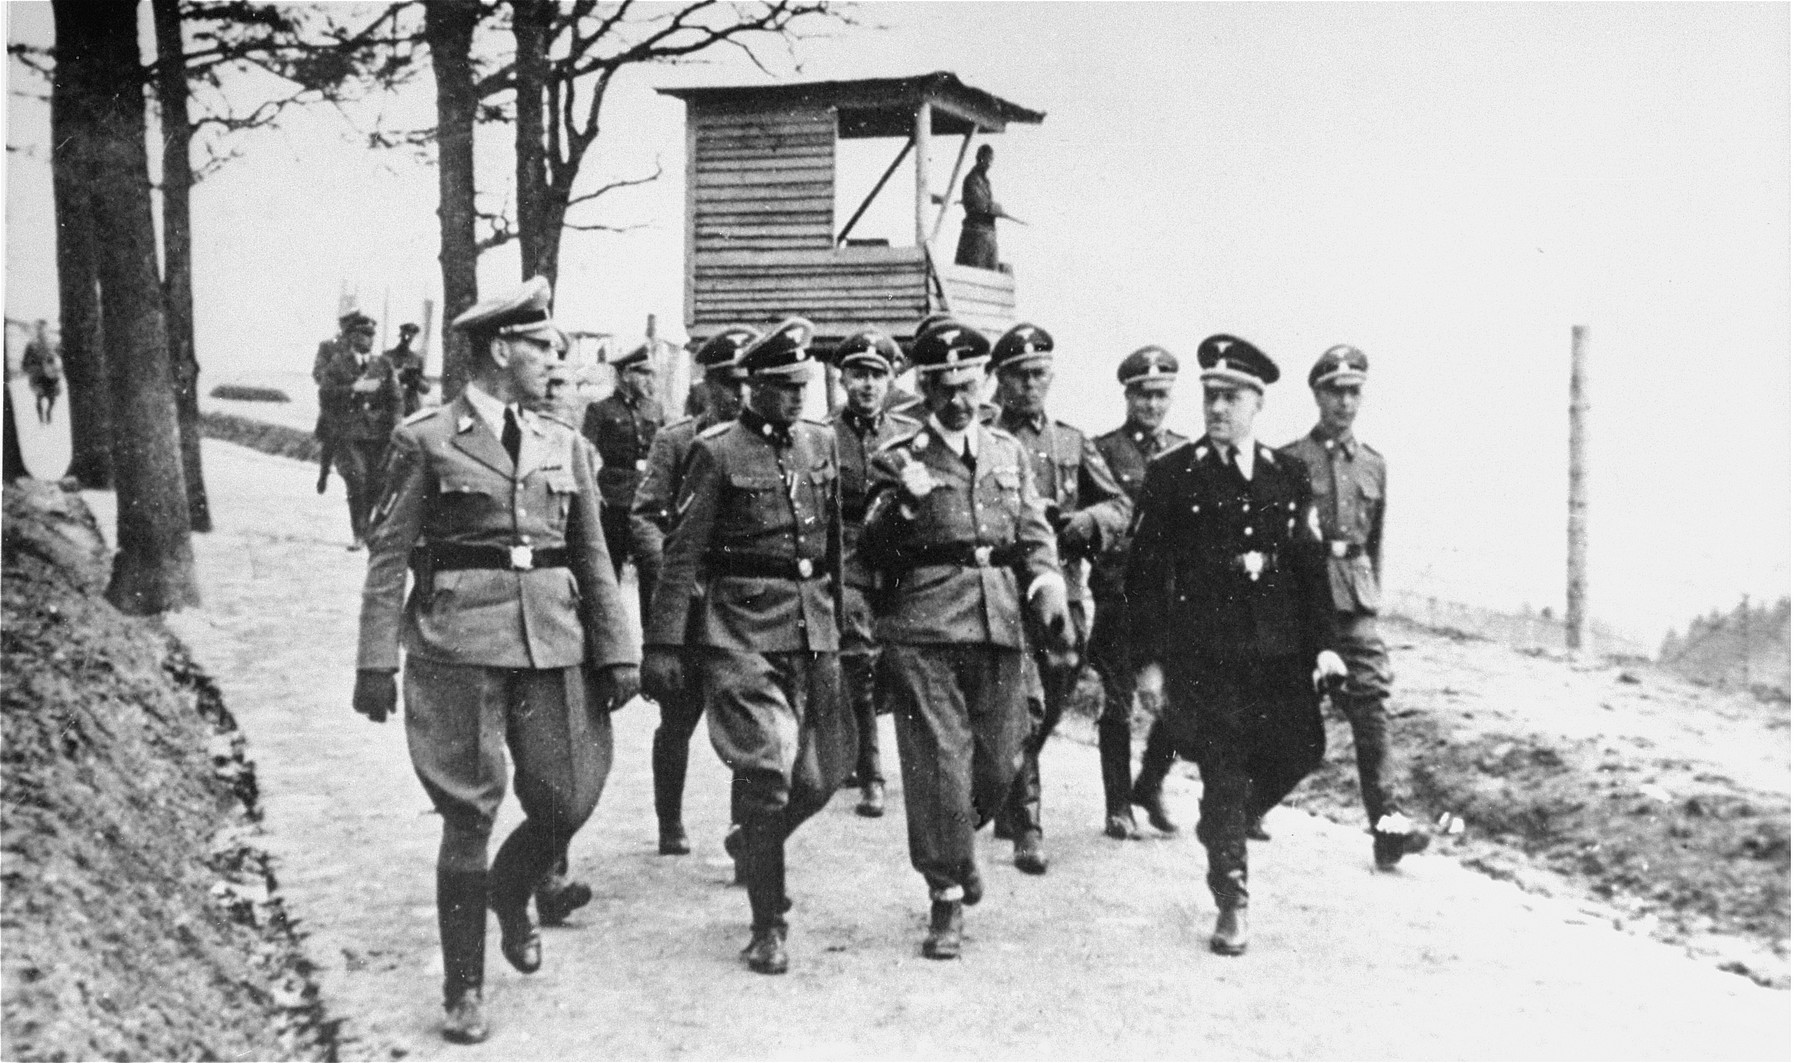 Himmler, Ernst Kaltenbrunner, and other SS officials visiting Mauthausen concentration camp in 1941